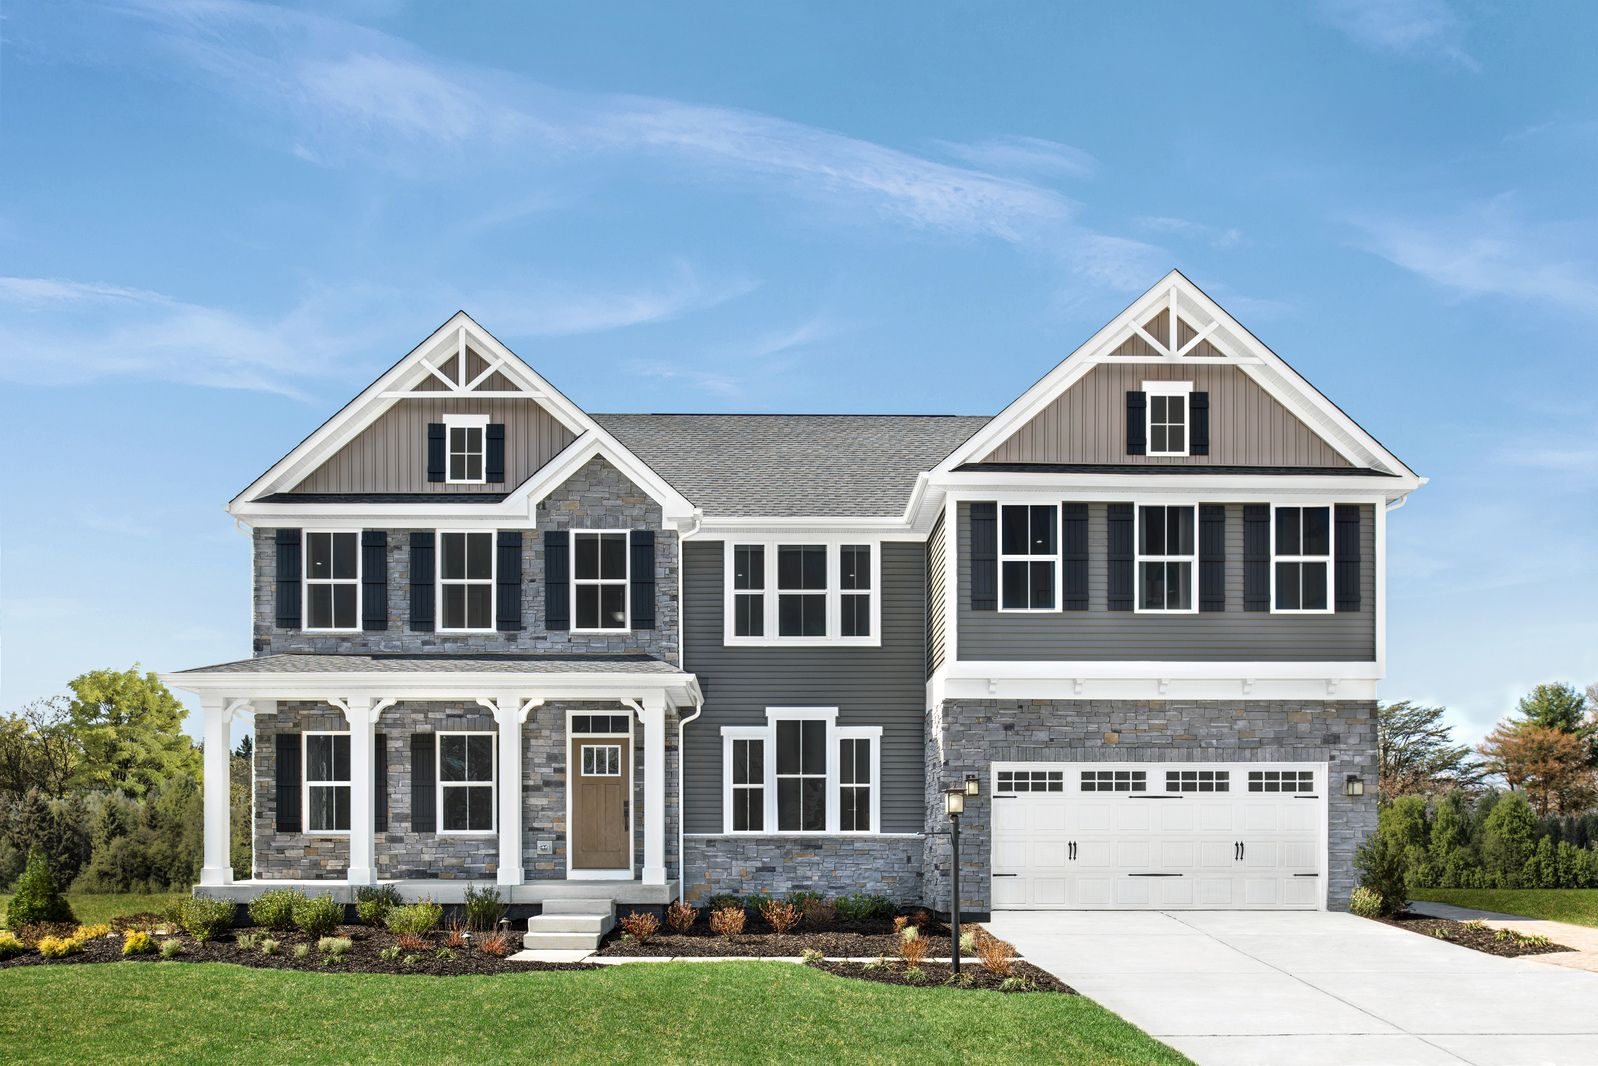 QUICK MOVE IN AT ARNOLDS CORNER!:Don't miss the opportunity to purchase a beautifully appointed Corsica home in sought after Arnold's Corner!Schedule your appointment today to find purchase this beautiful estate home!